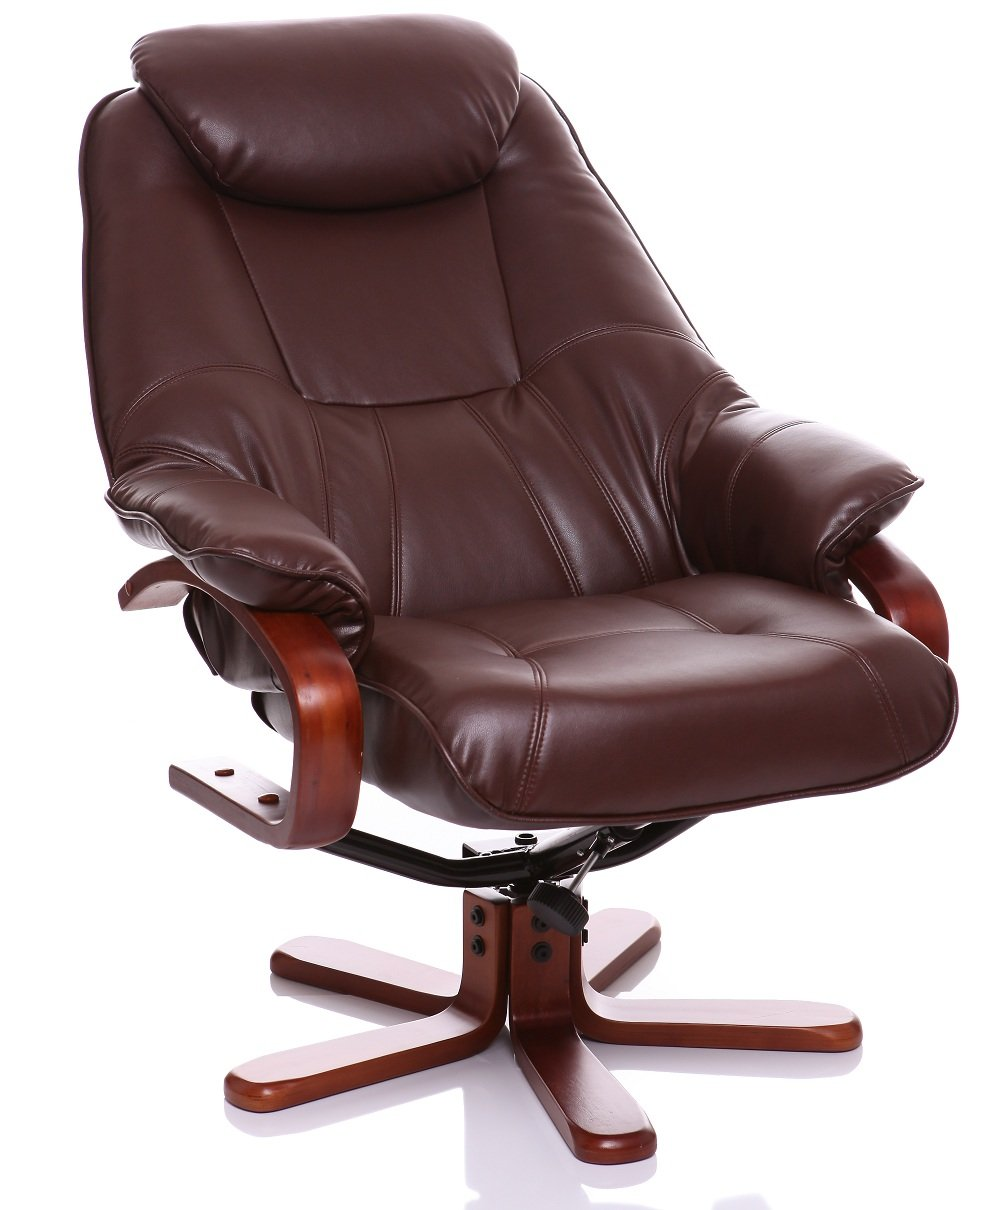 The Macau - Bonded Leather Recliner Swivel Chair with Matching Footstool in Nut Brown Amazon.co.uk Kitchen u0026 Home  sc 1 st  Amazon UK & The Macau - Bonded Leather Recliner Swivel Chair with Matching ... islam-shia.org